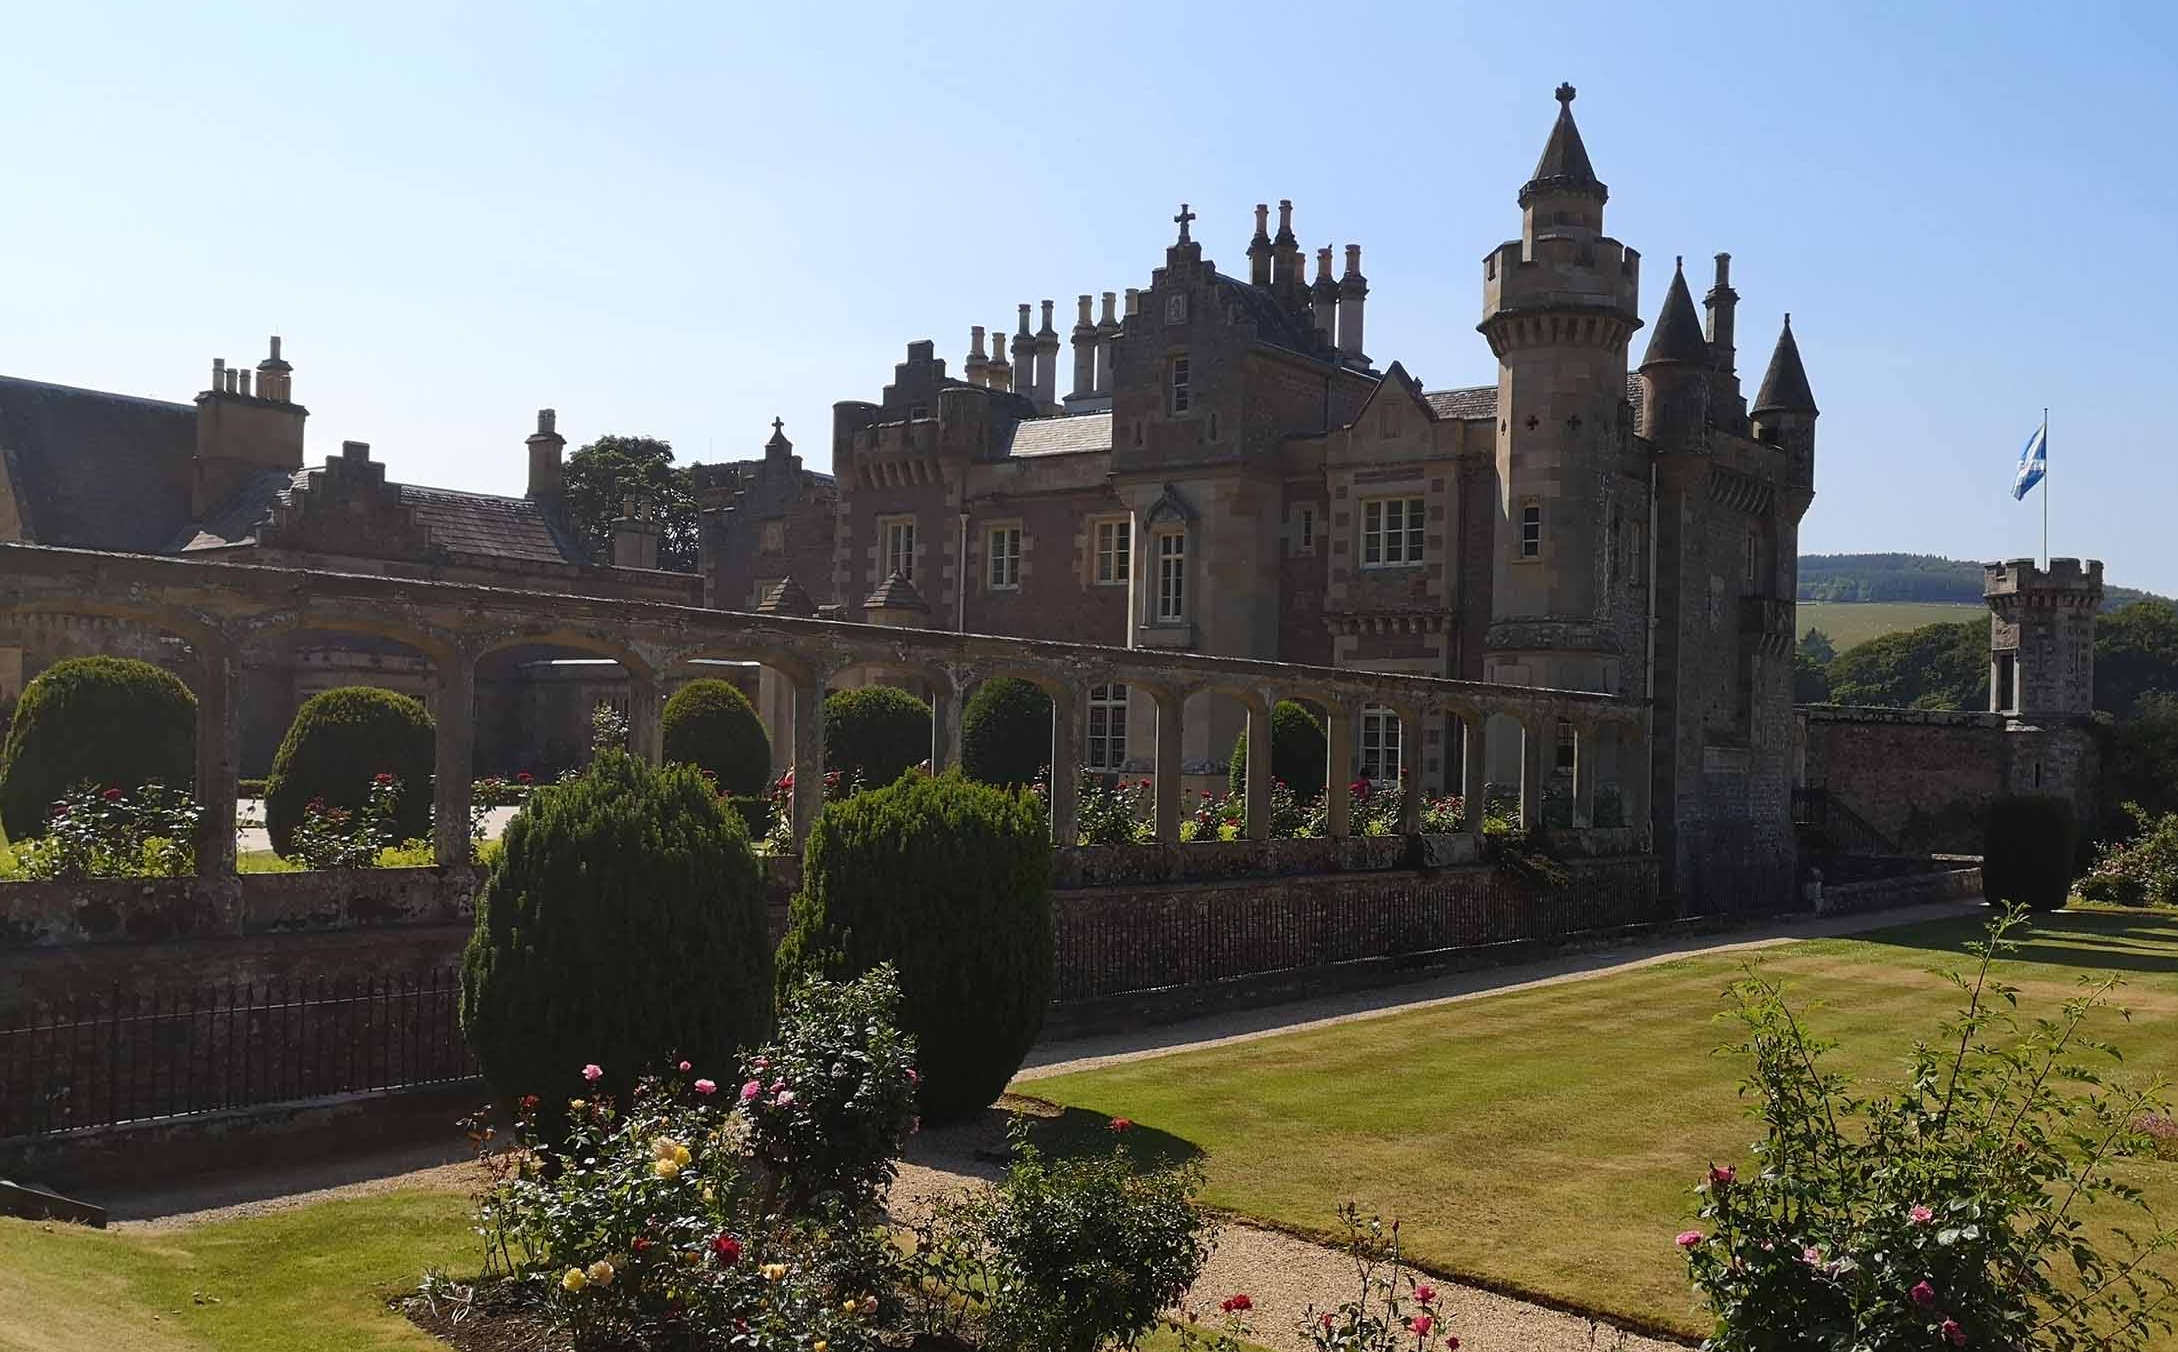 Abbotsford House - By Melrose, the Scottish Borders